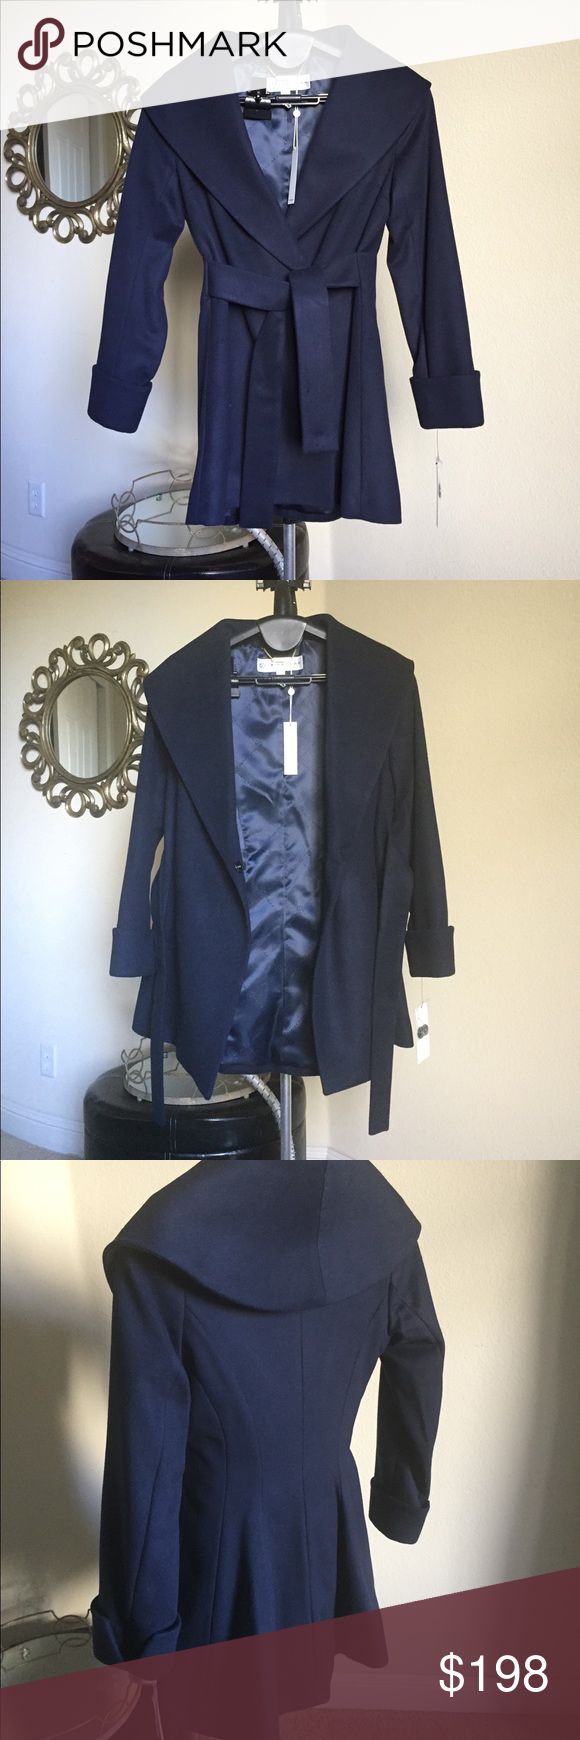 Trina Turk Ali Wrap Coat Stunning! Dramatic shawl collar and waist defining belt, beautiful wool blend, timeless appeal, feels amazing on. Deep navy to wear with everything.  Flattering fit for sure.  BRAND NEW WITH TAGS AND NEVER WORN! Trina Turk Jackets & Coats